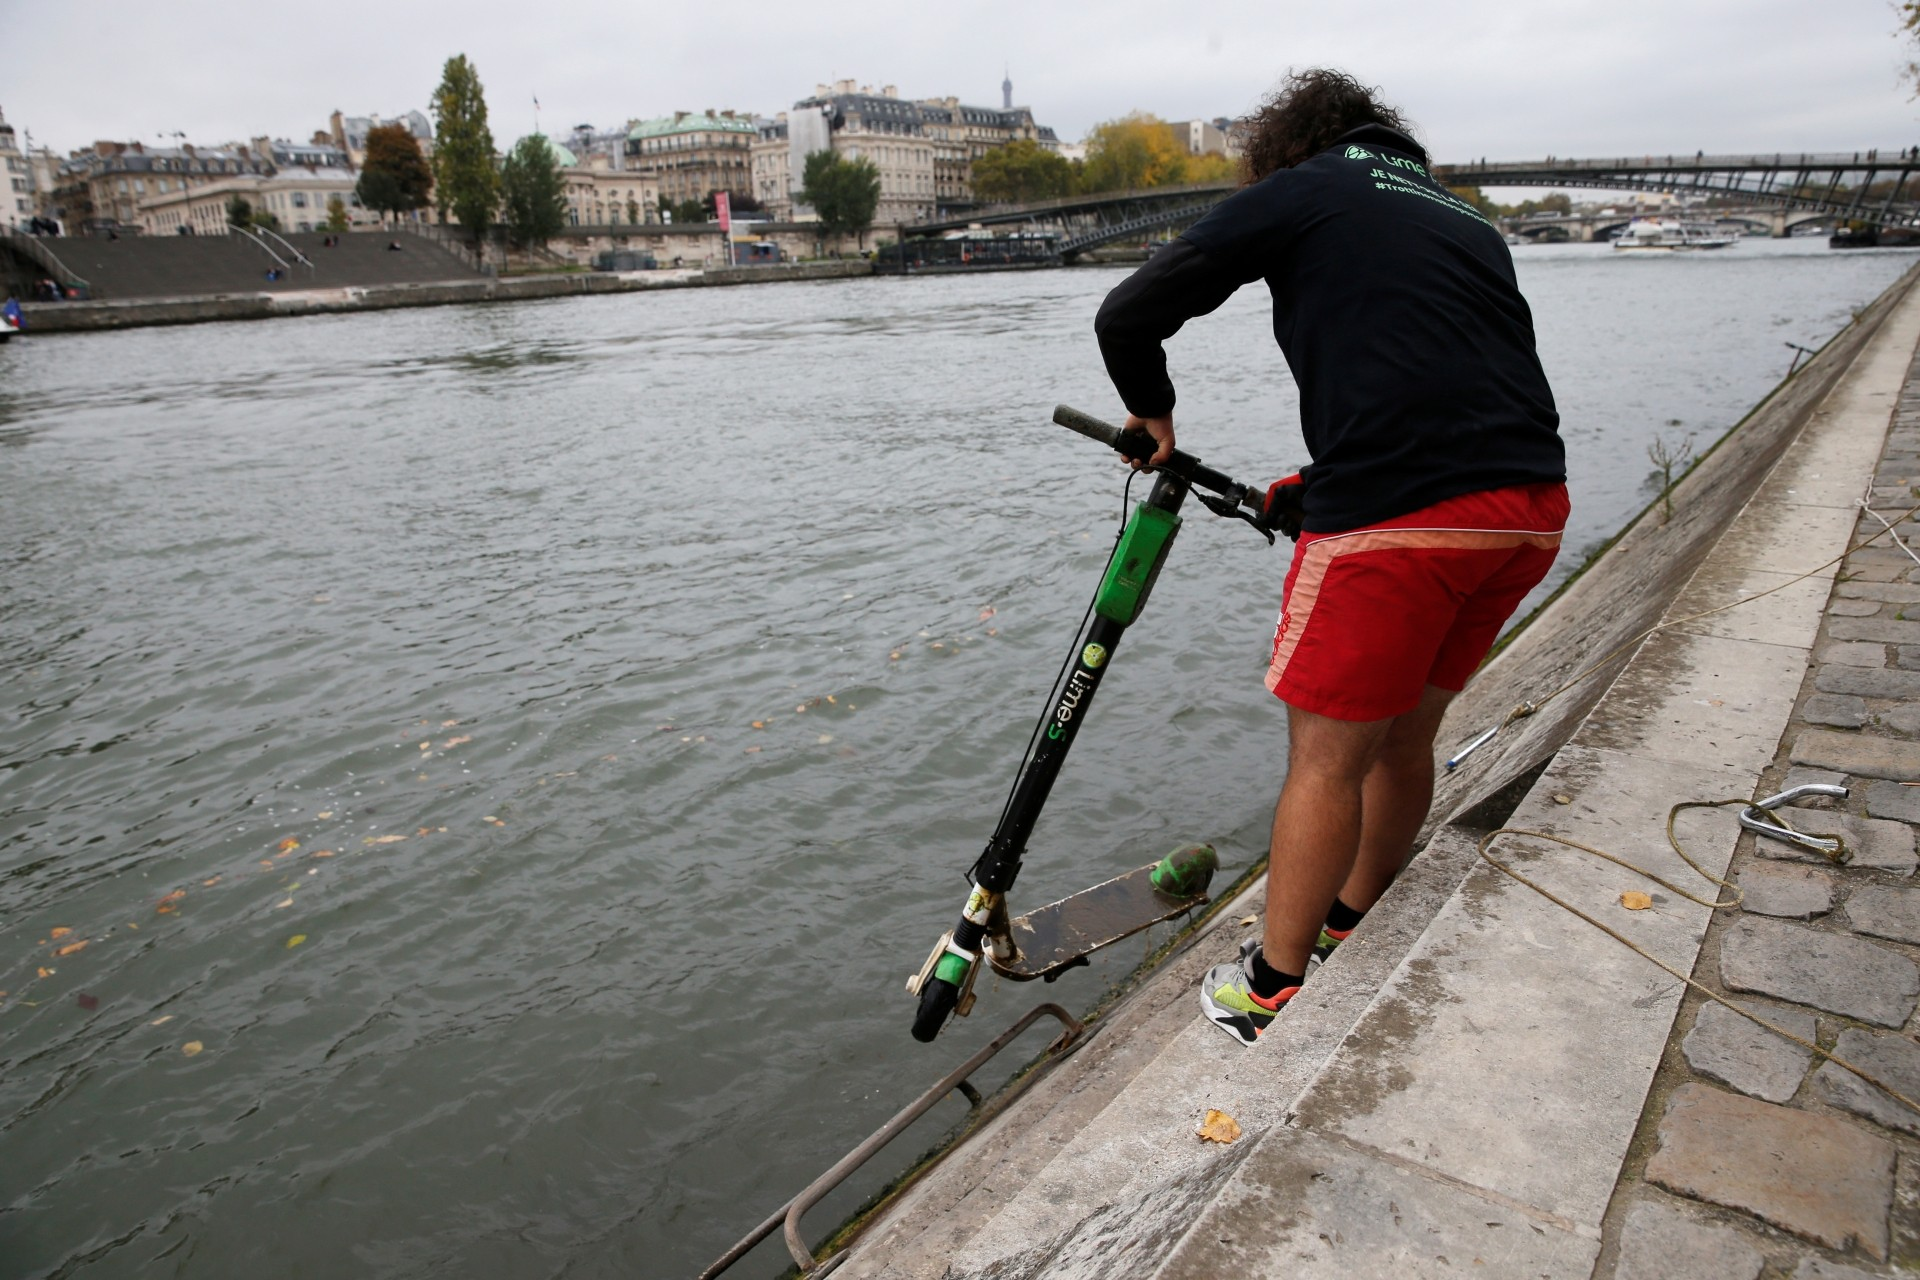 A Lime employee fishing an abandoned electric scooter Lime-S out of the River Seine in Paris, France.